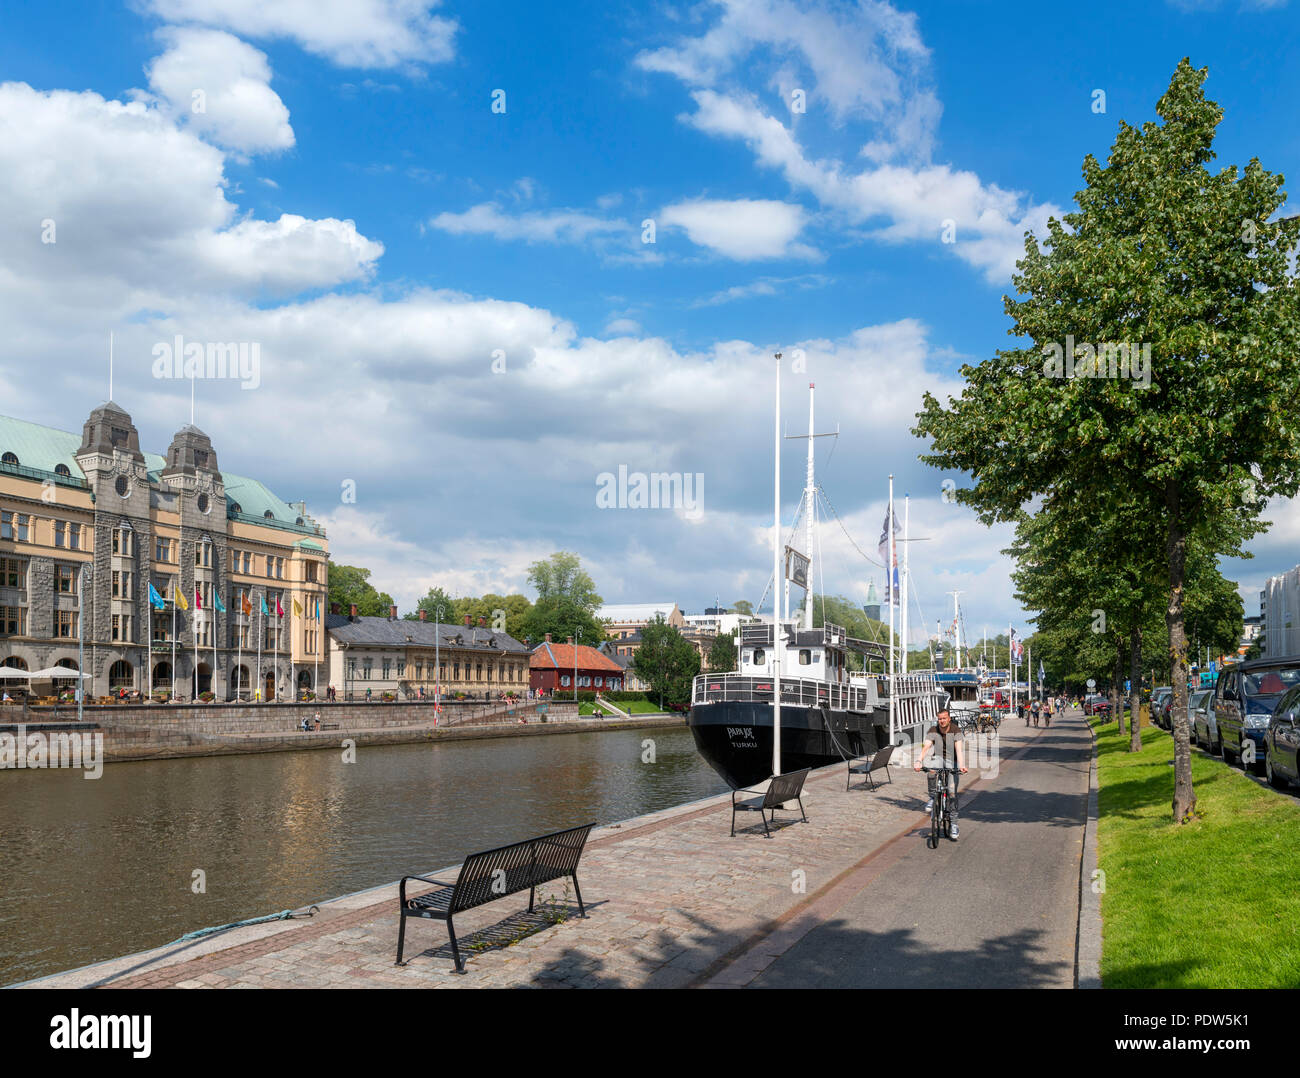 The banks of the River Aura (Aurajoki) in the historic centre, Turku, Finland - Stock Image